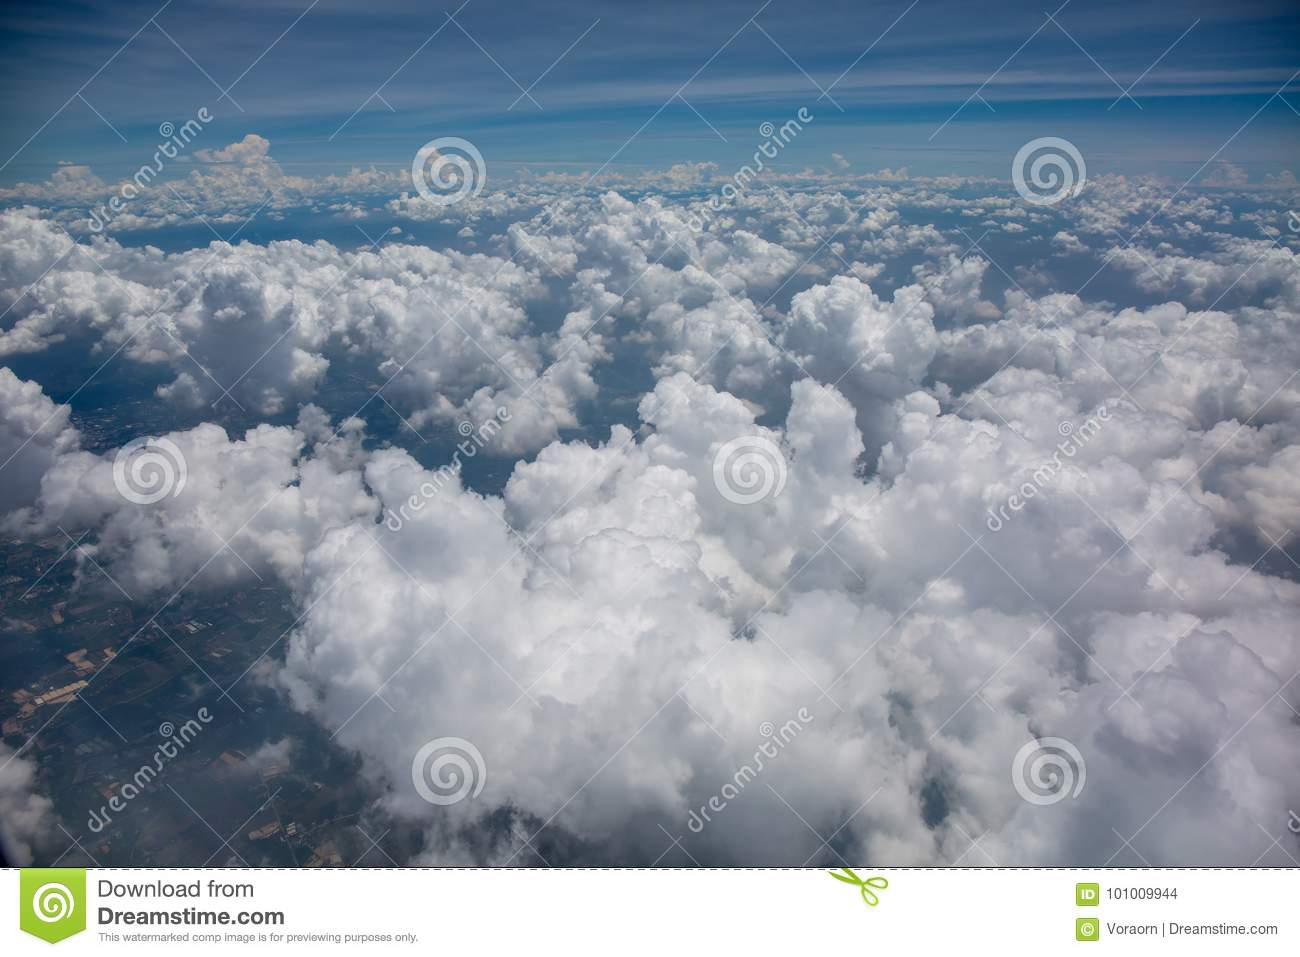 A lot of cloud in the air